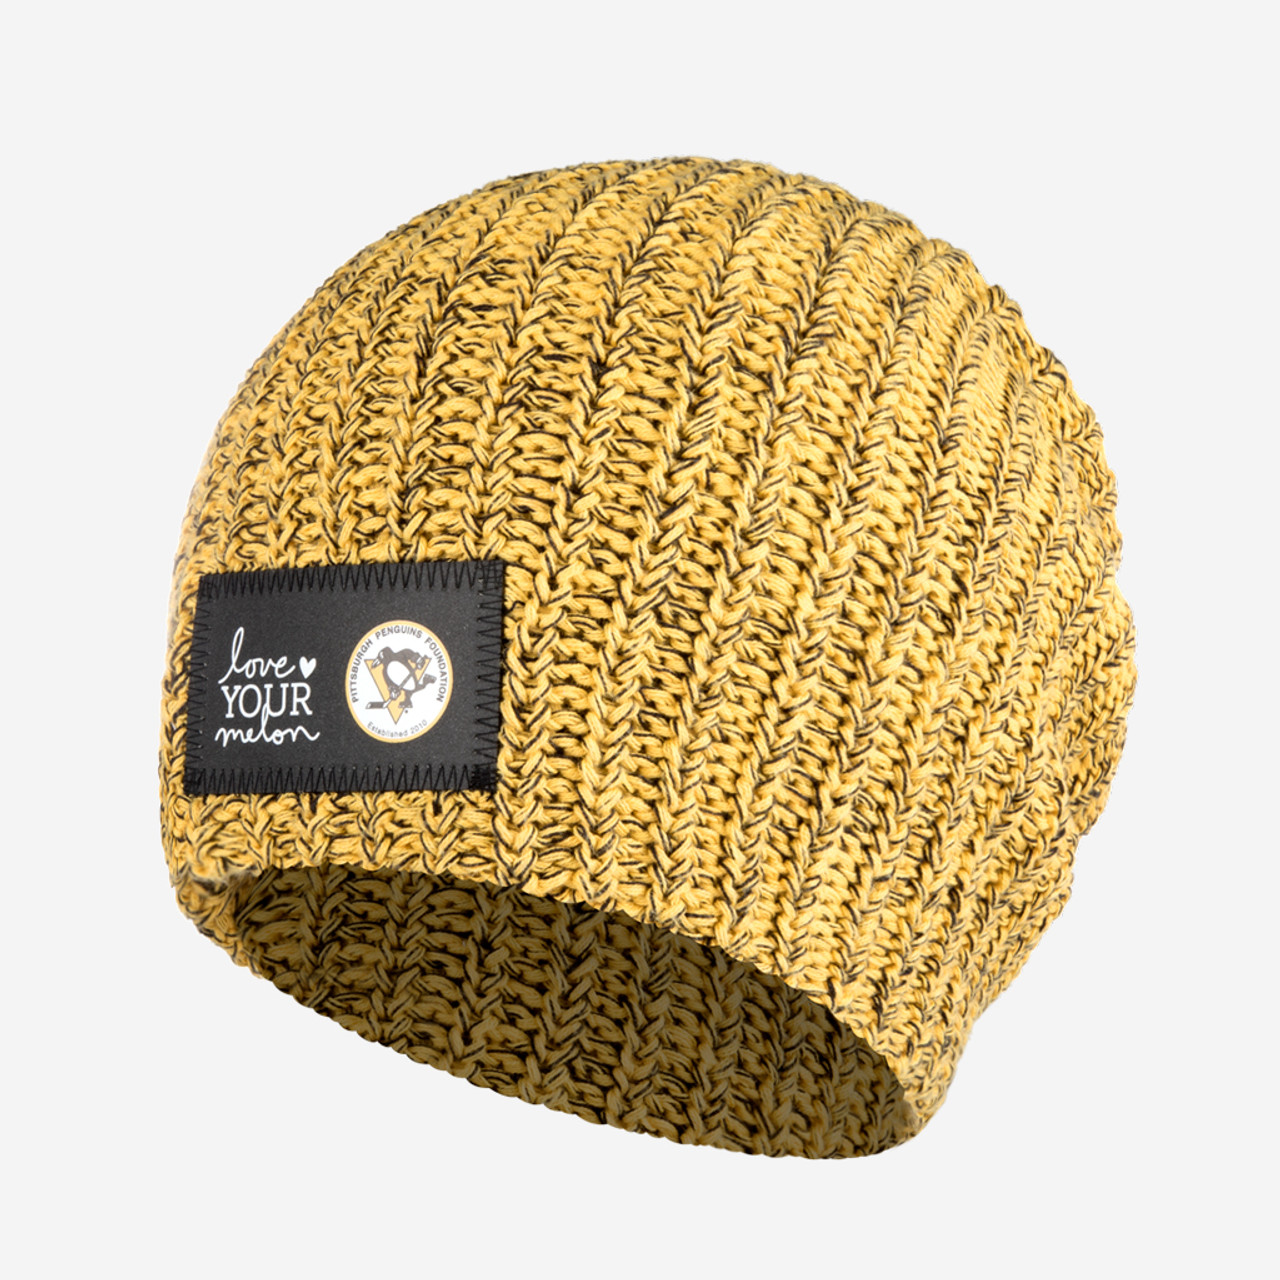 80bc749f666 Pittsburgh Penguins Love Your Melon Beanie - Wendell August Forge